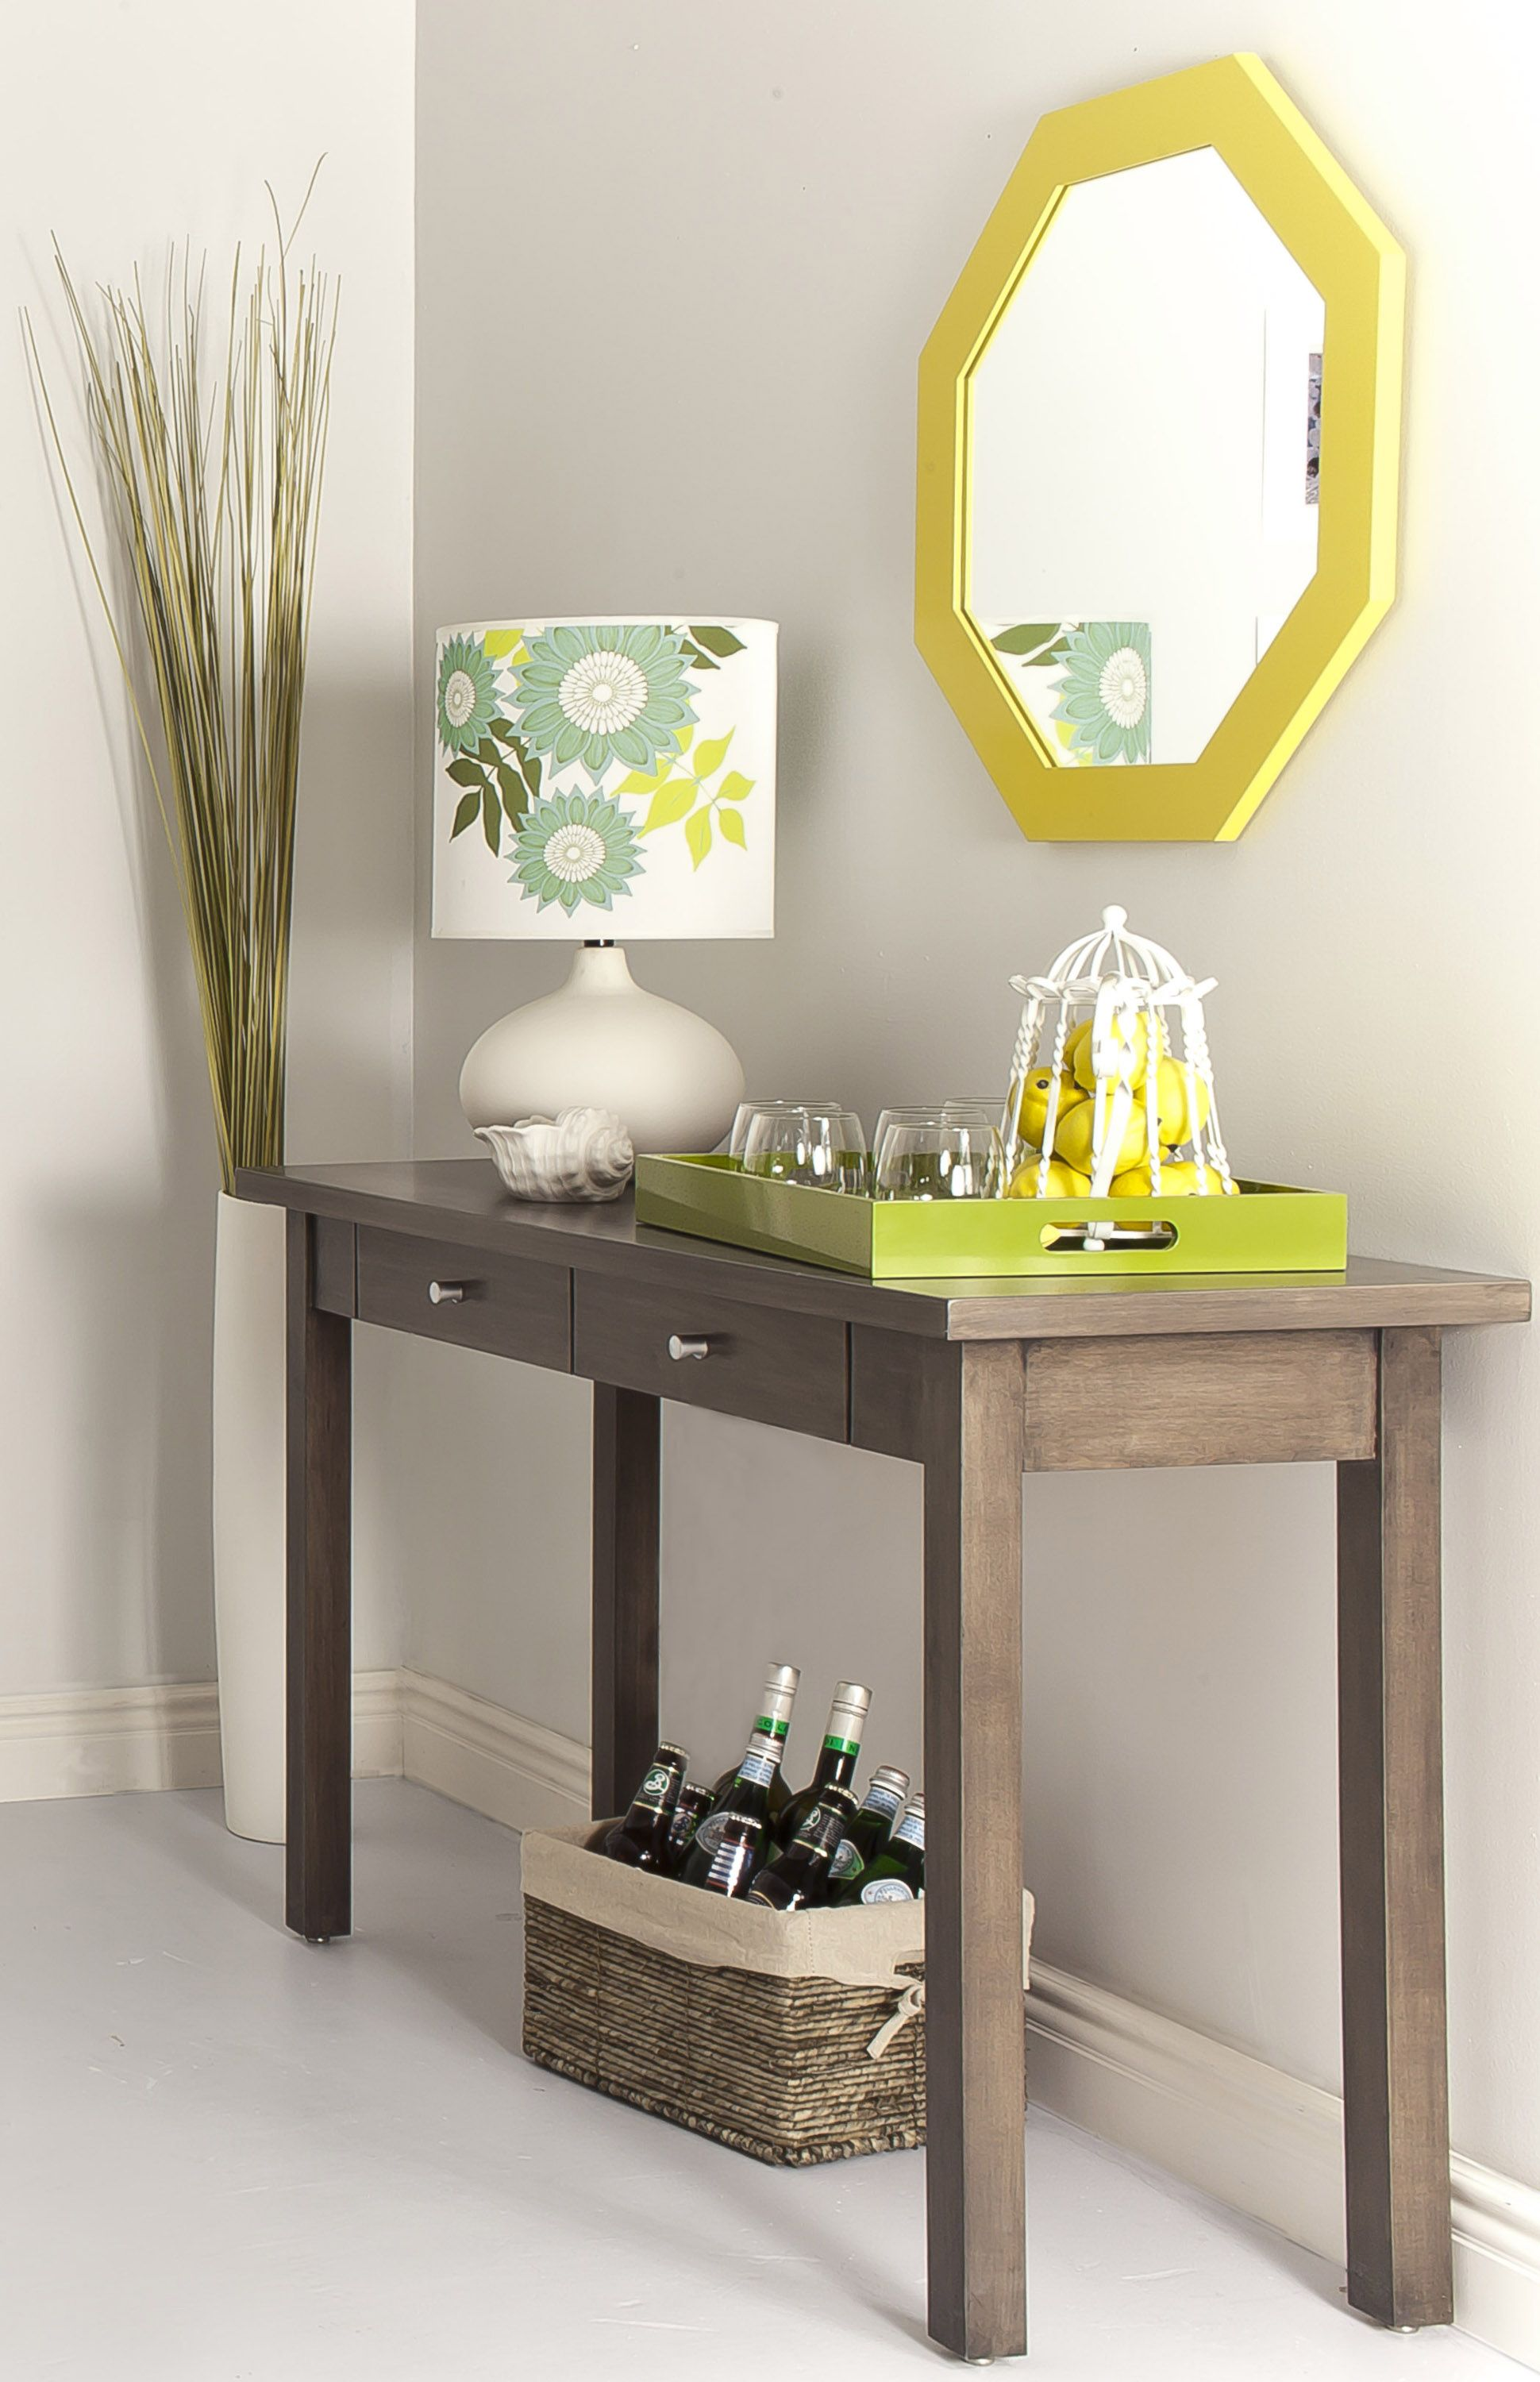 Entry hallway furniture  Image of Entryway Console Table with Mirror  Home Inspiration